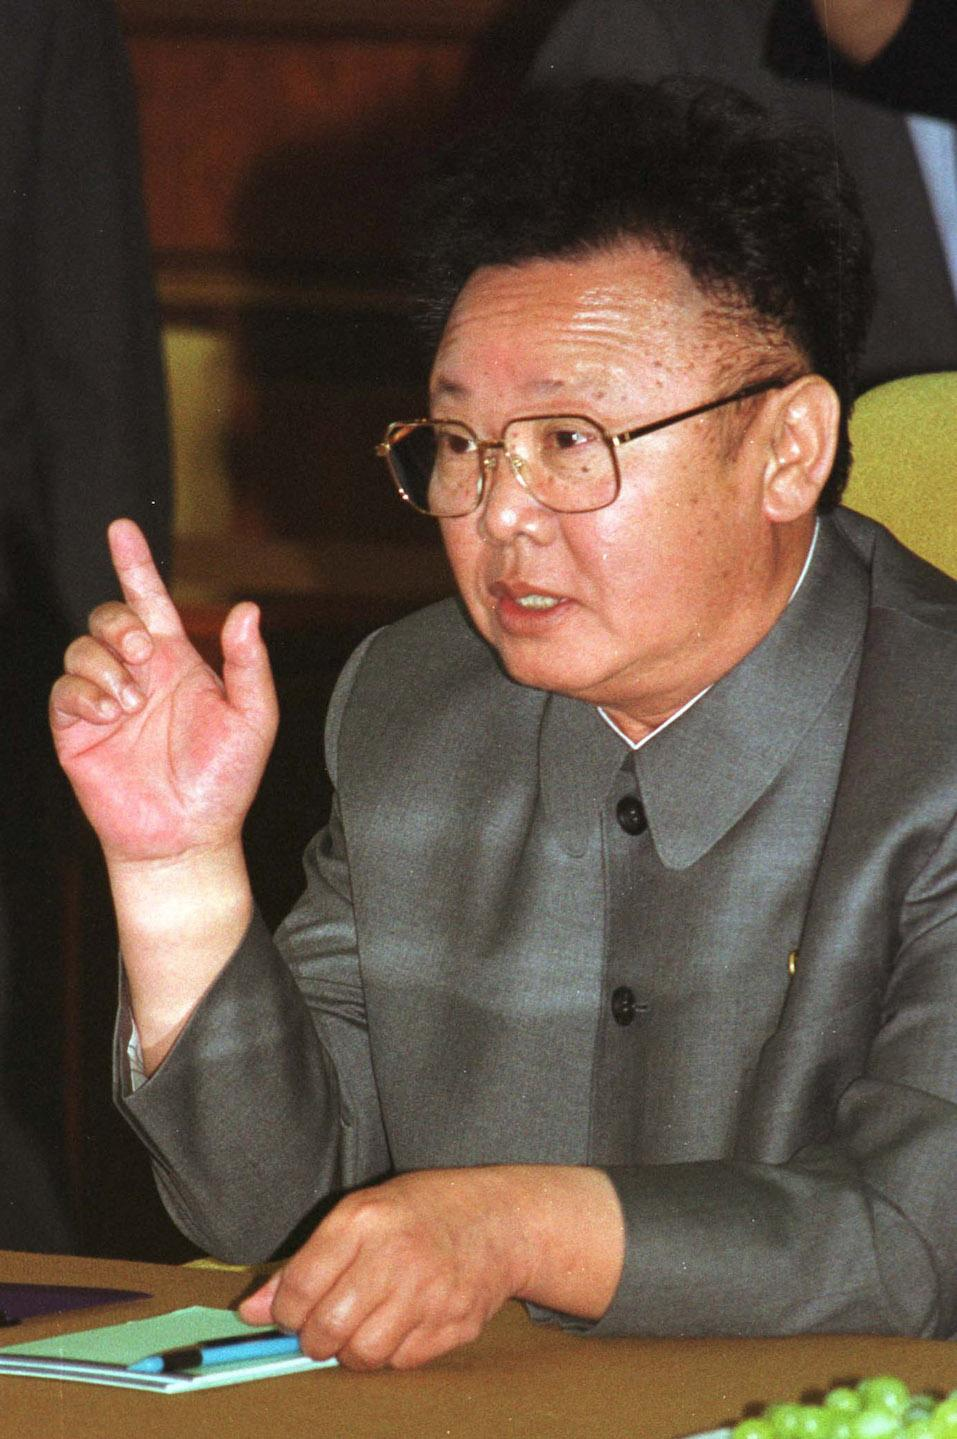 kim jong un could drive at age 3 north korea 39 s most insane claims about its leaders page 2. Black Bedroom Furniture Sets. Home Design Ideas